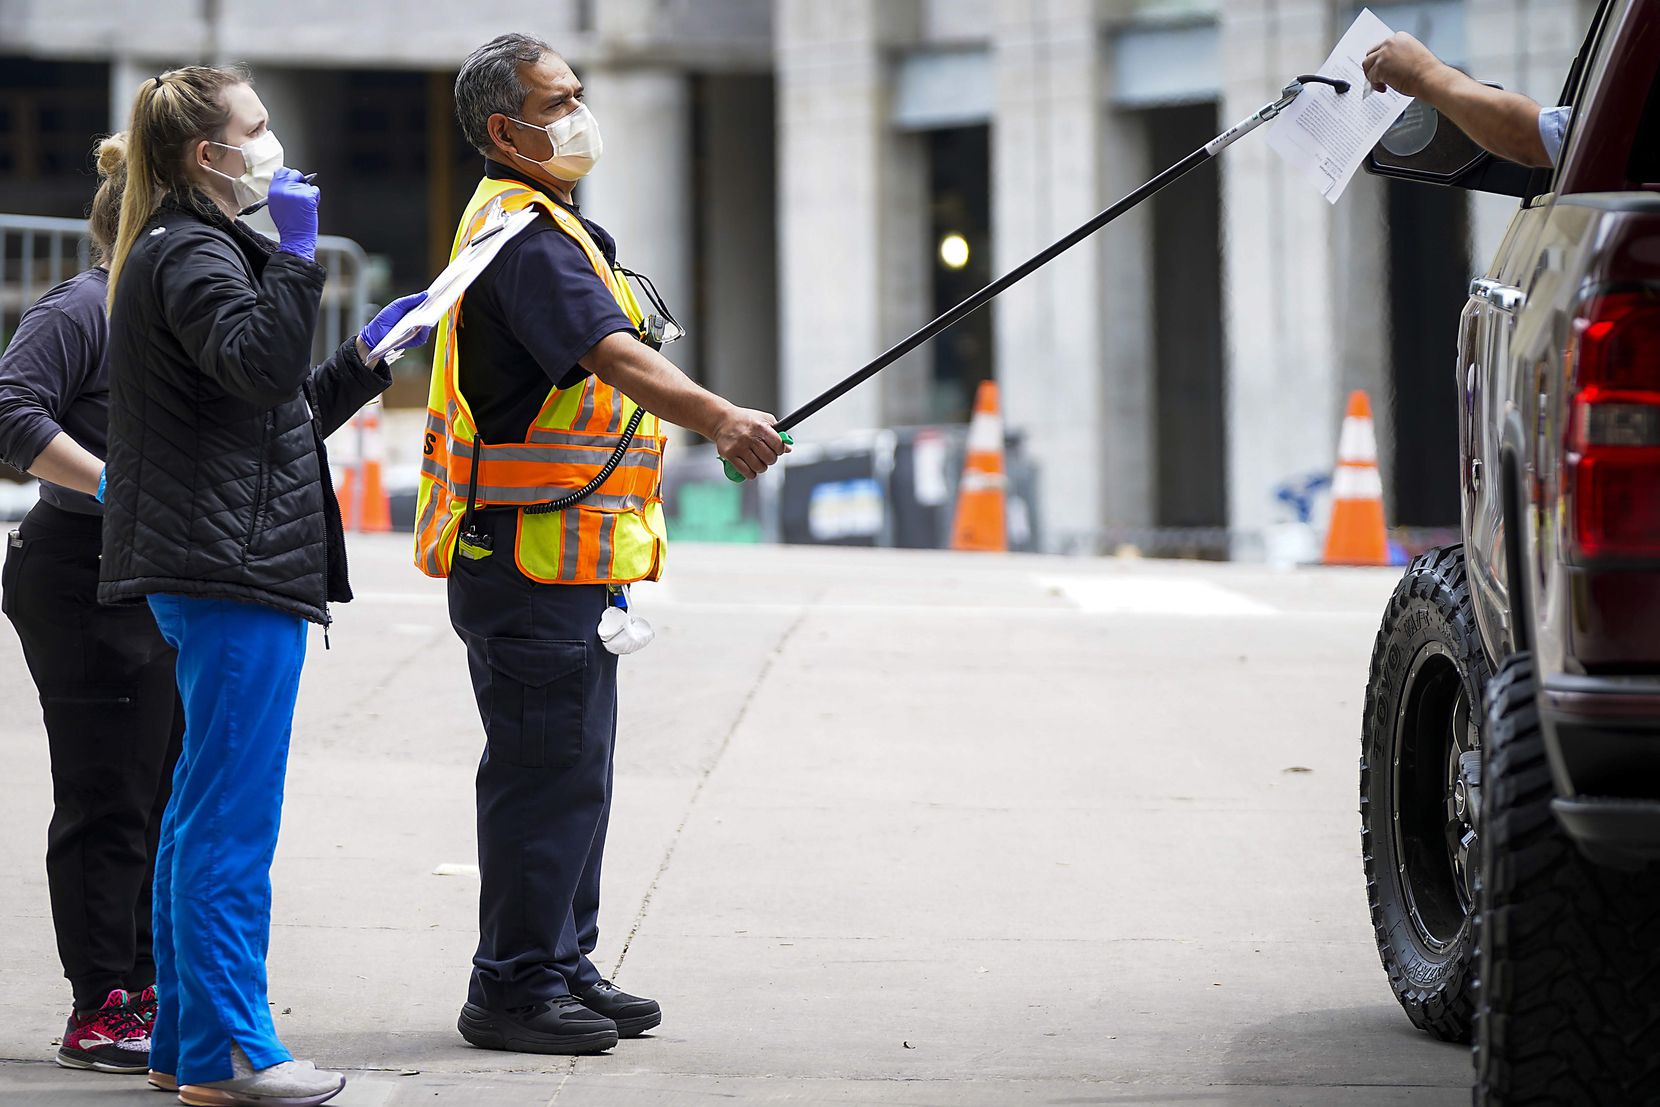 Health care workers use a pole to give paperwork to a person being tested at a COVID-19 drive-through testing site at American Airlines Center. Employment lawyers say the outbreak will allow companies to require their workers to get testing, but legal liability remains in other areas.